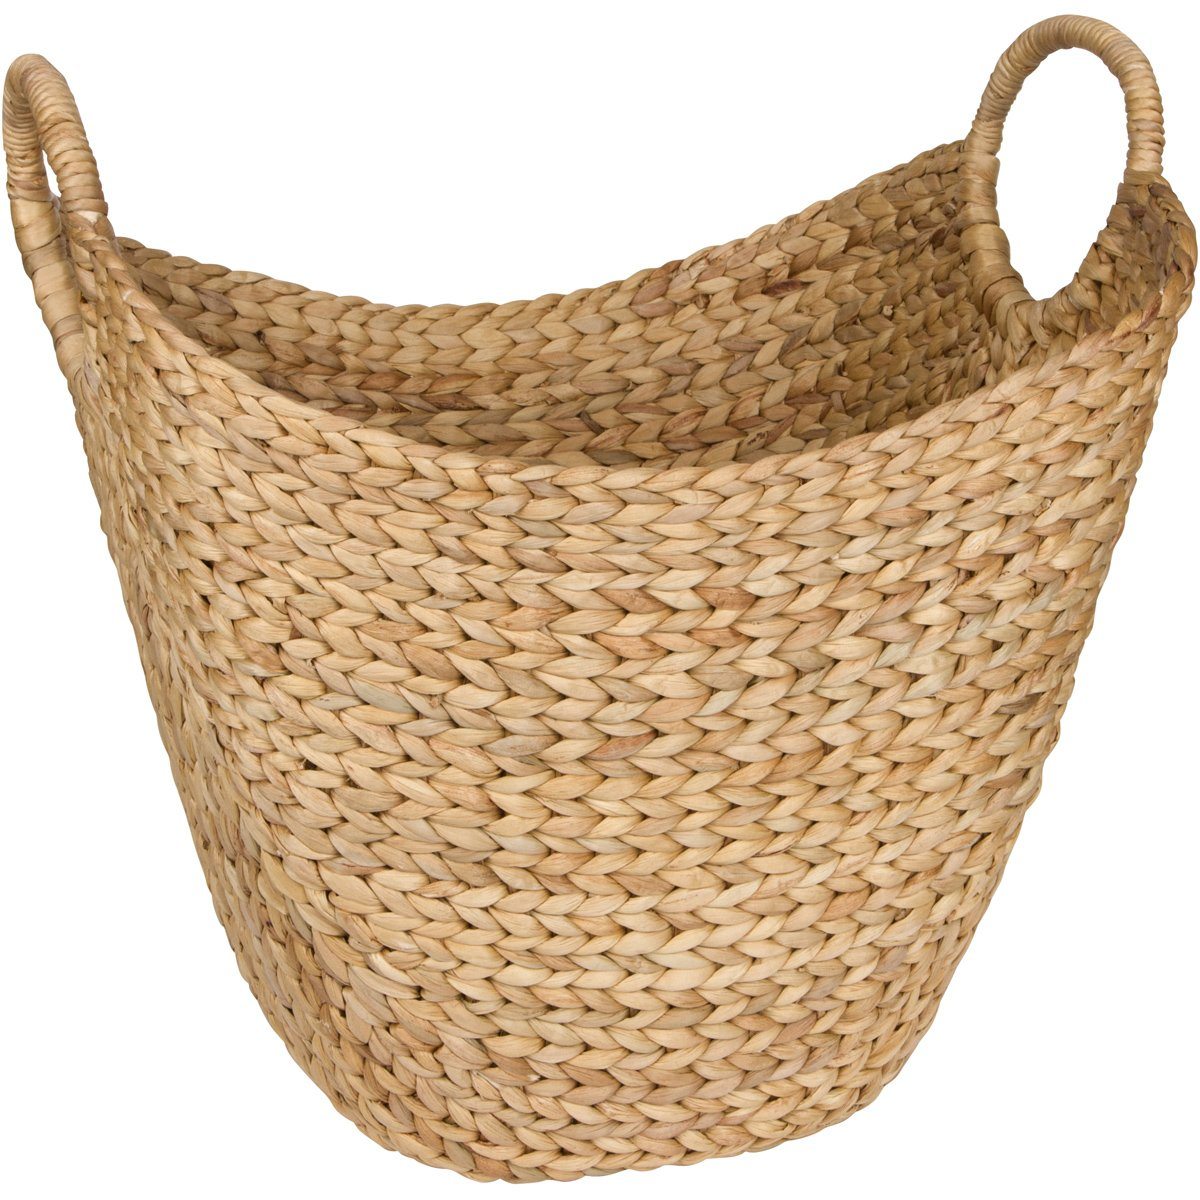 Large Woven Seagrass Storage Basket – Wicker Pattern Baskets With Braided Handles As Organizer For Blankets, Towels, Pillows, Toys, Laundry, Baby, Kids, Home Decor - Natural Water Hyacinth Chesed Products